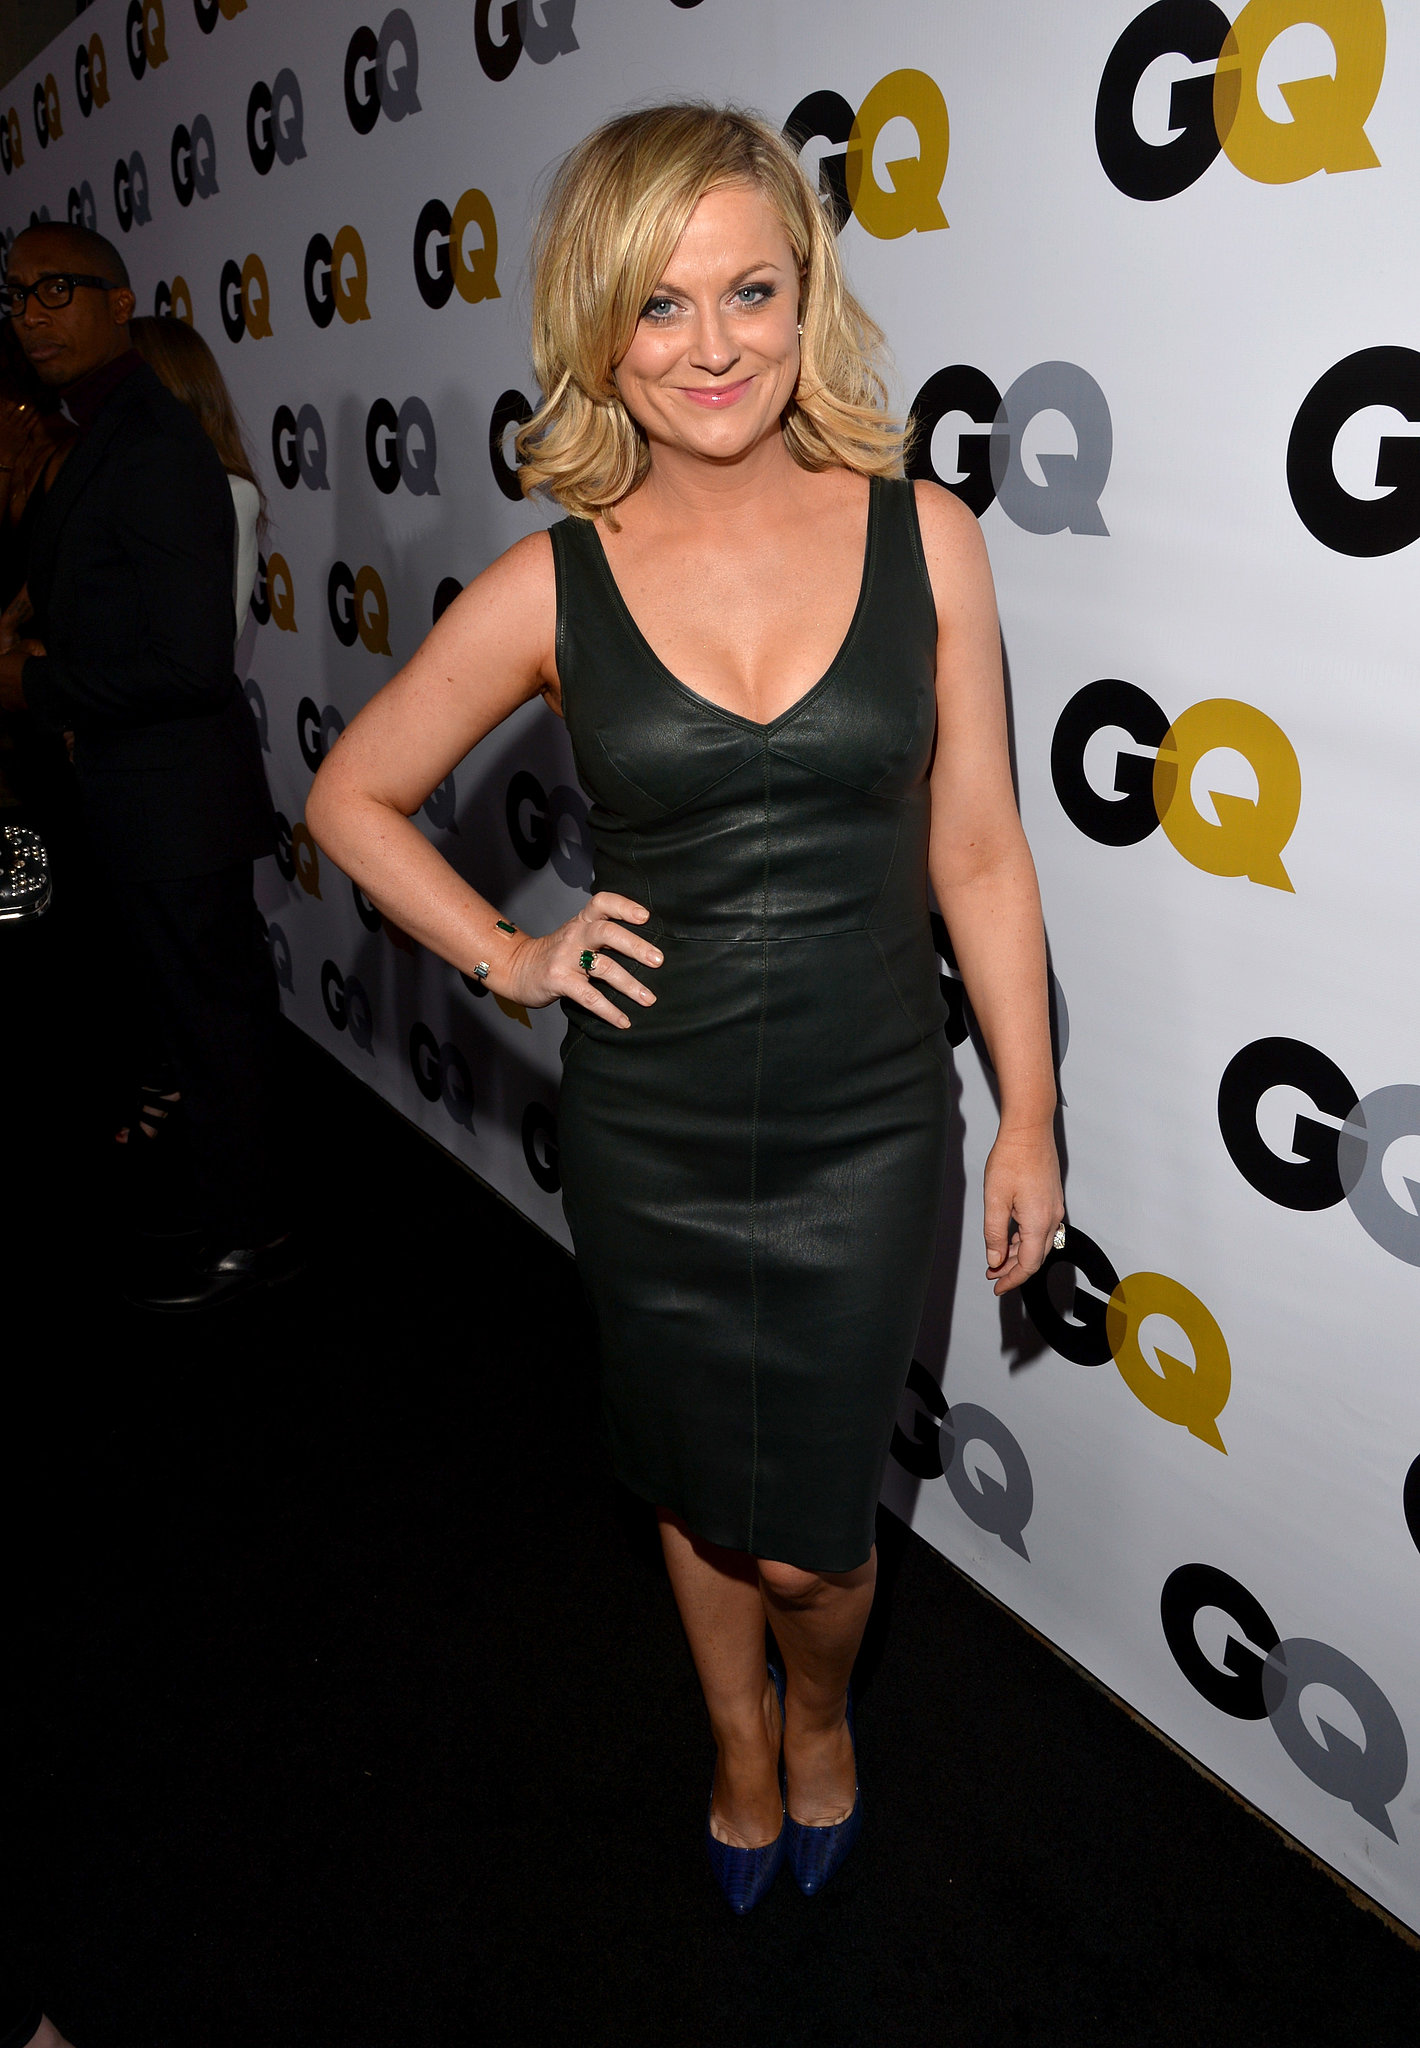 Amy Poehler wore a leather dress for the GQ Men of the Year party in LA.